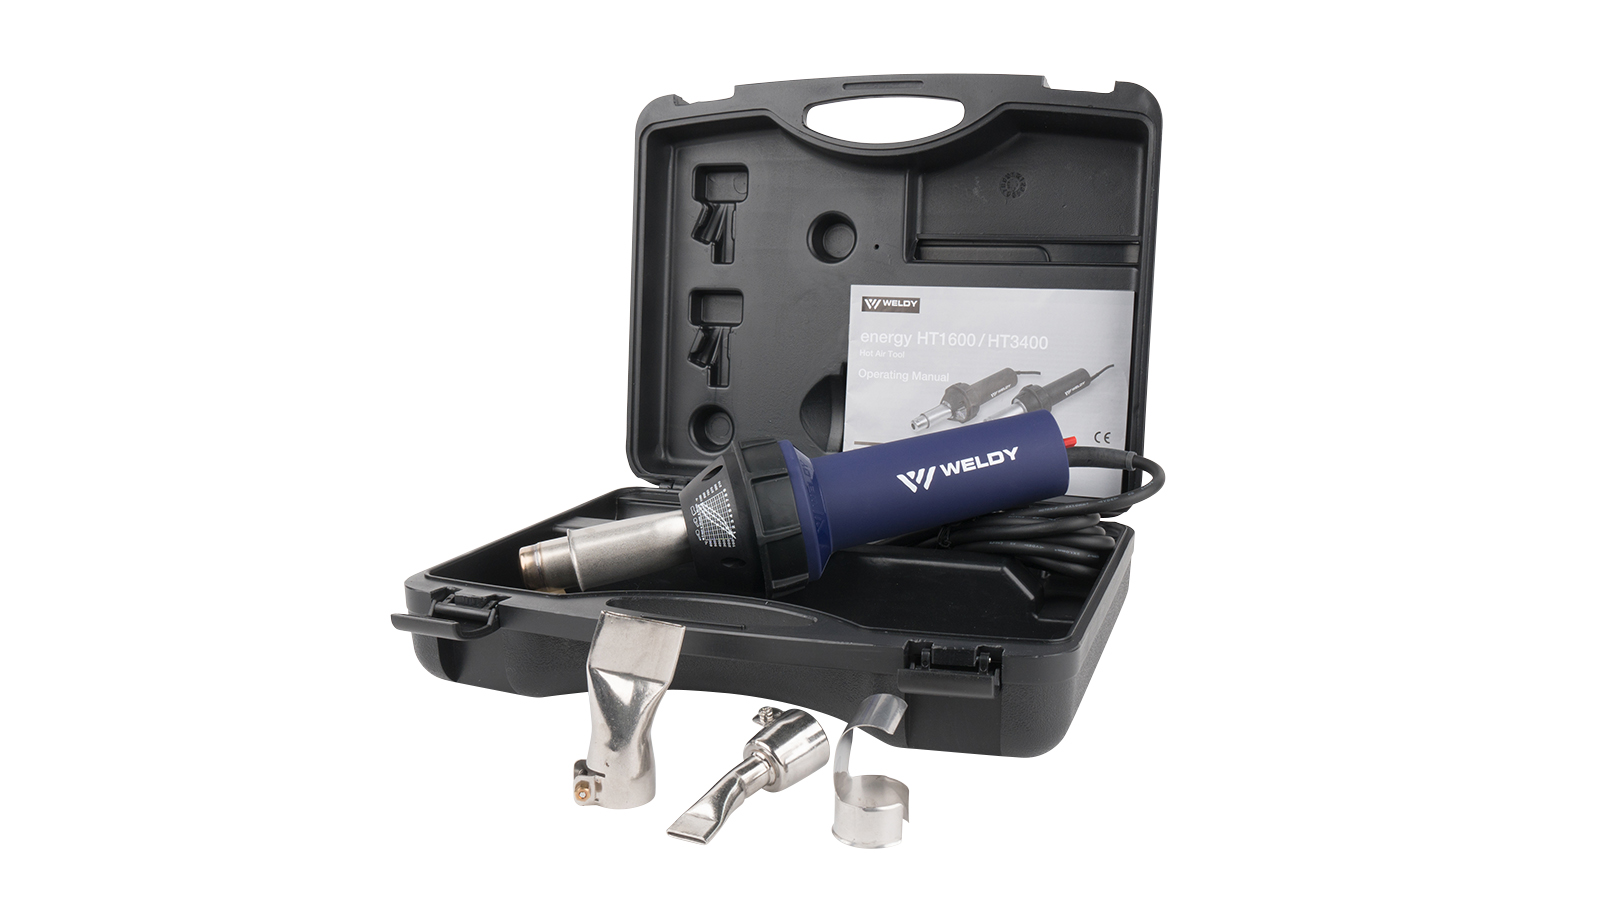 Weldy energy HT1600 shrinking kit